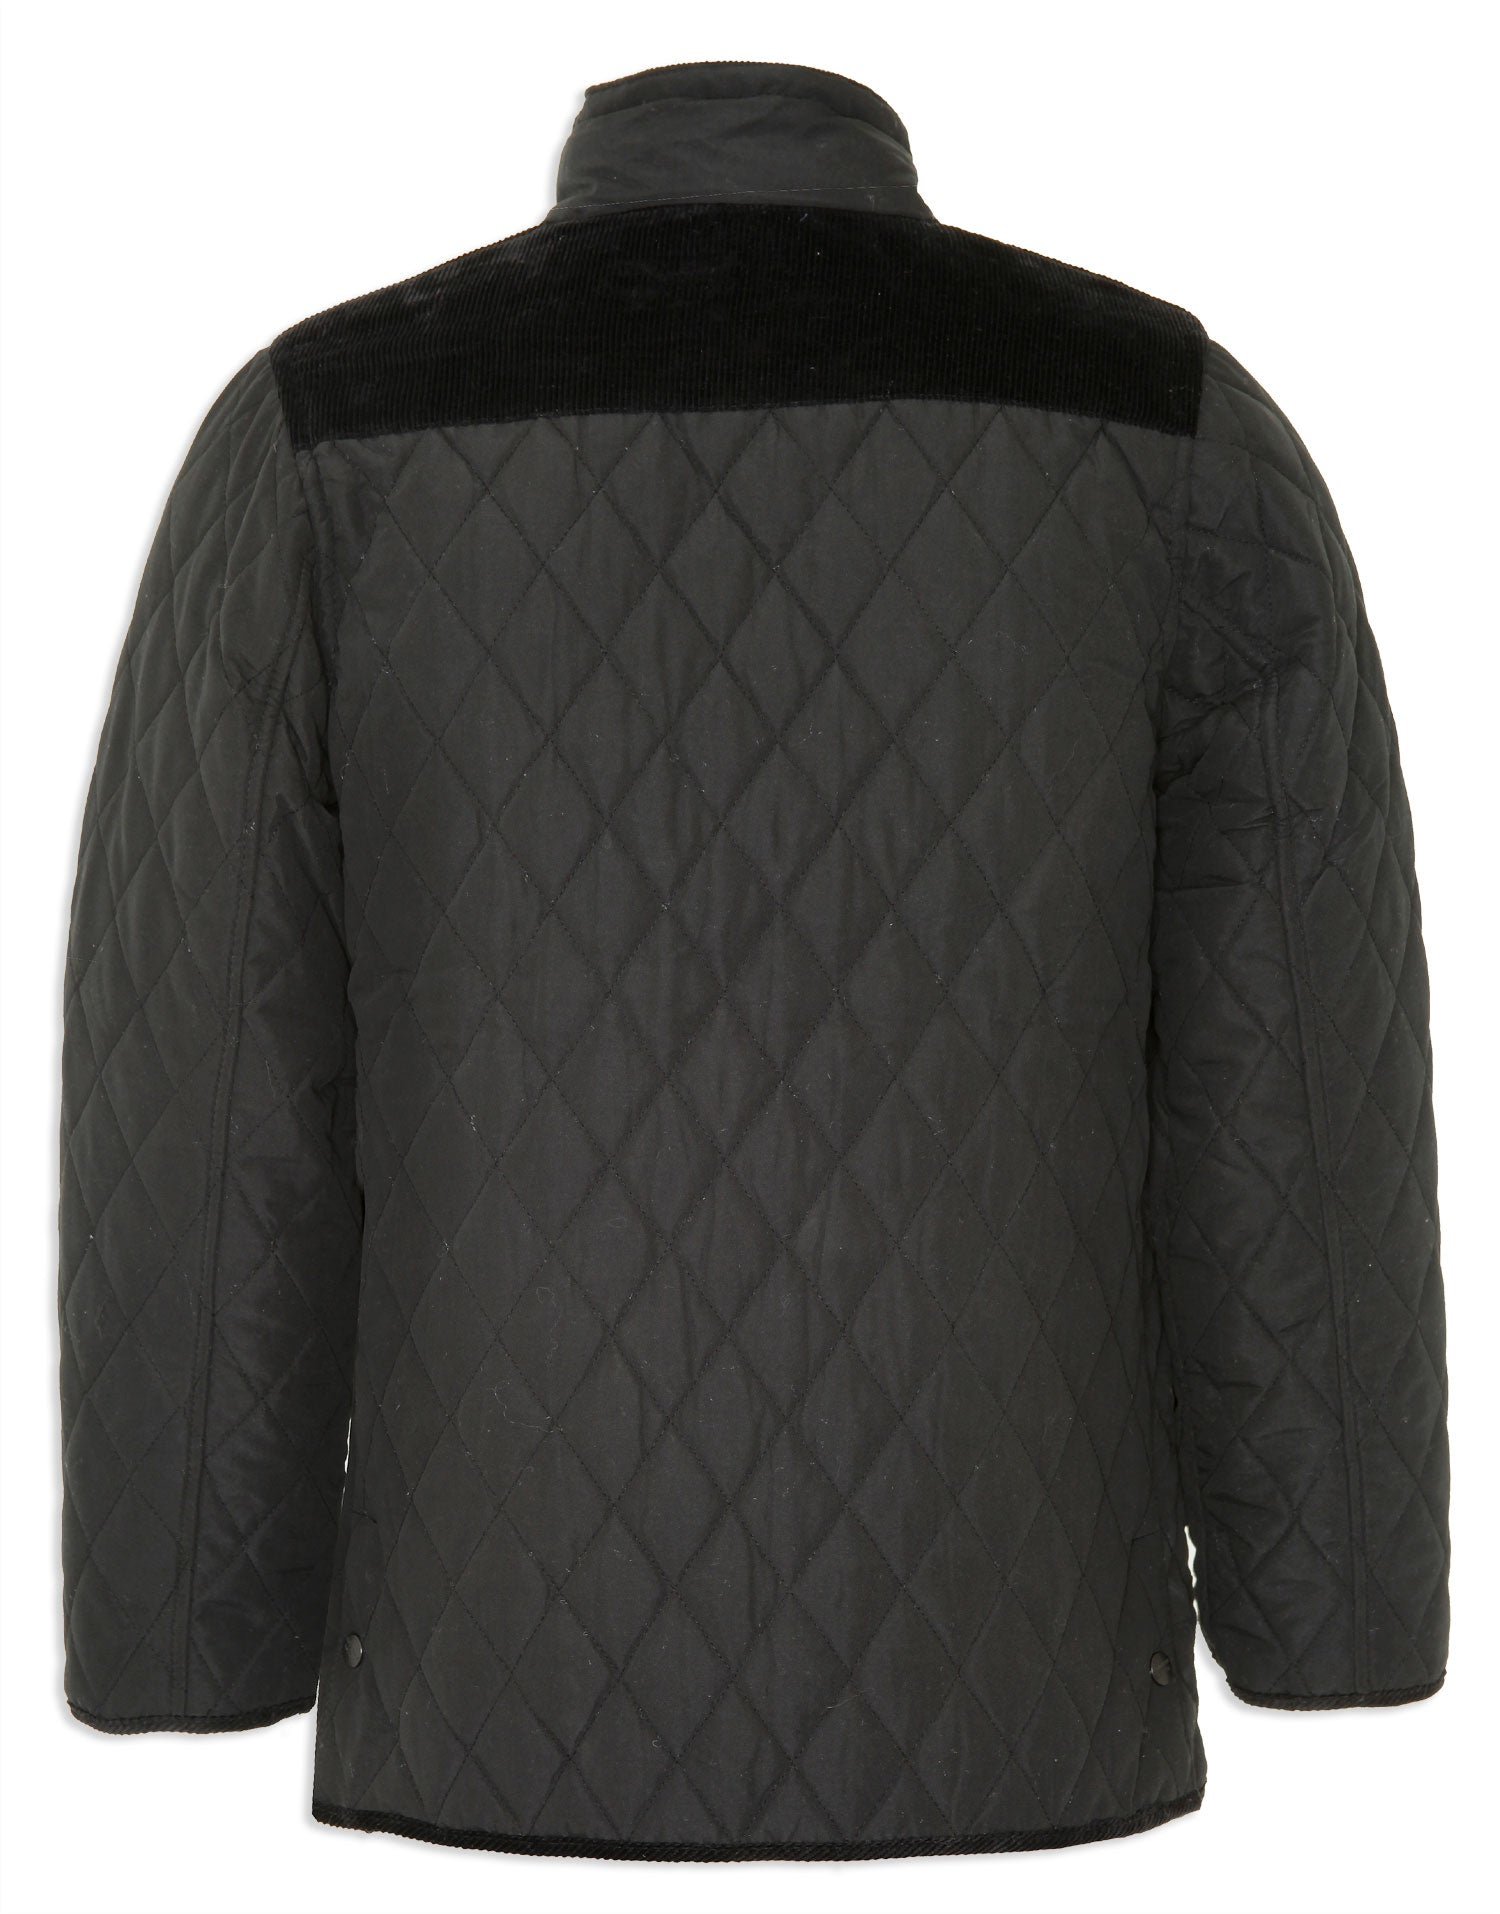 rear view Champion Lewis Diamond Quilted Jacket in Black